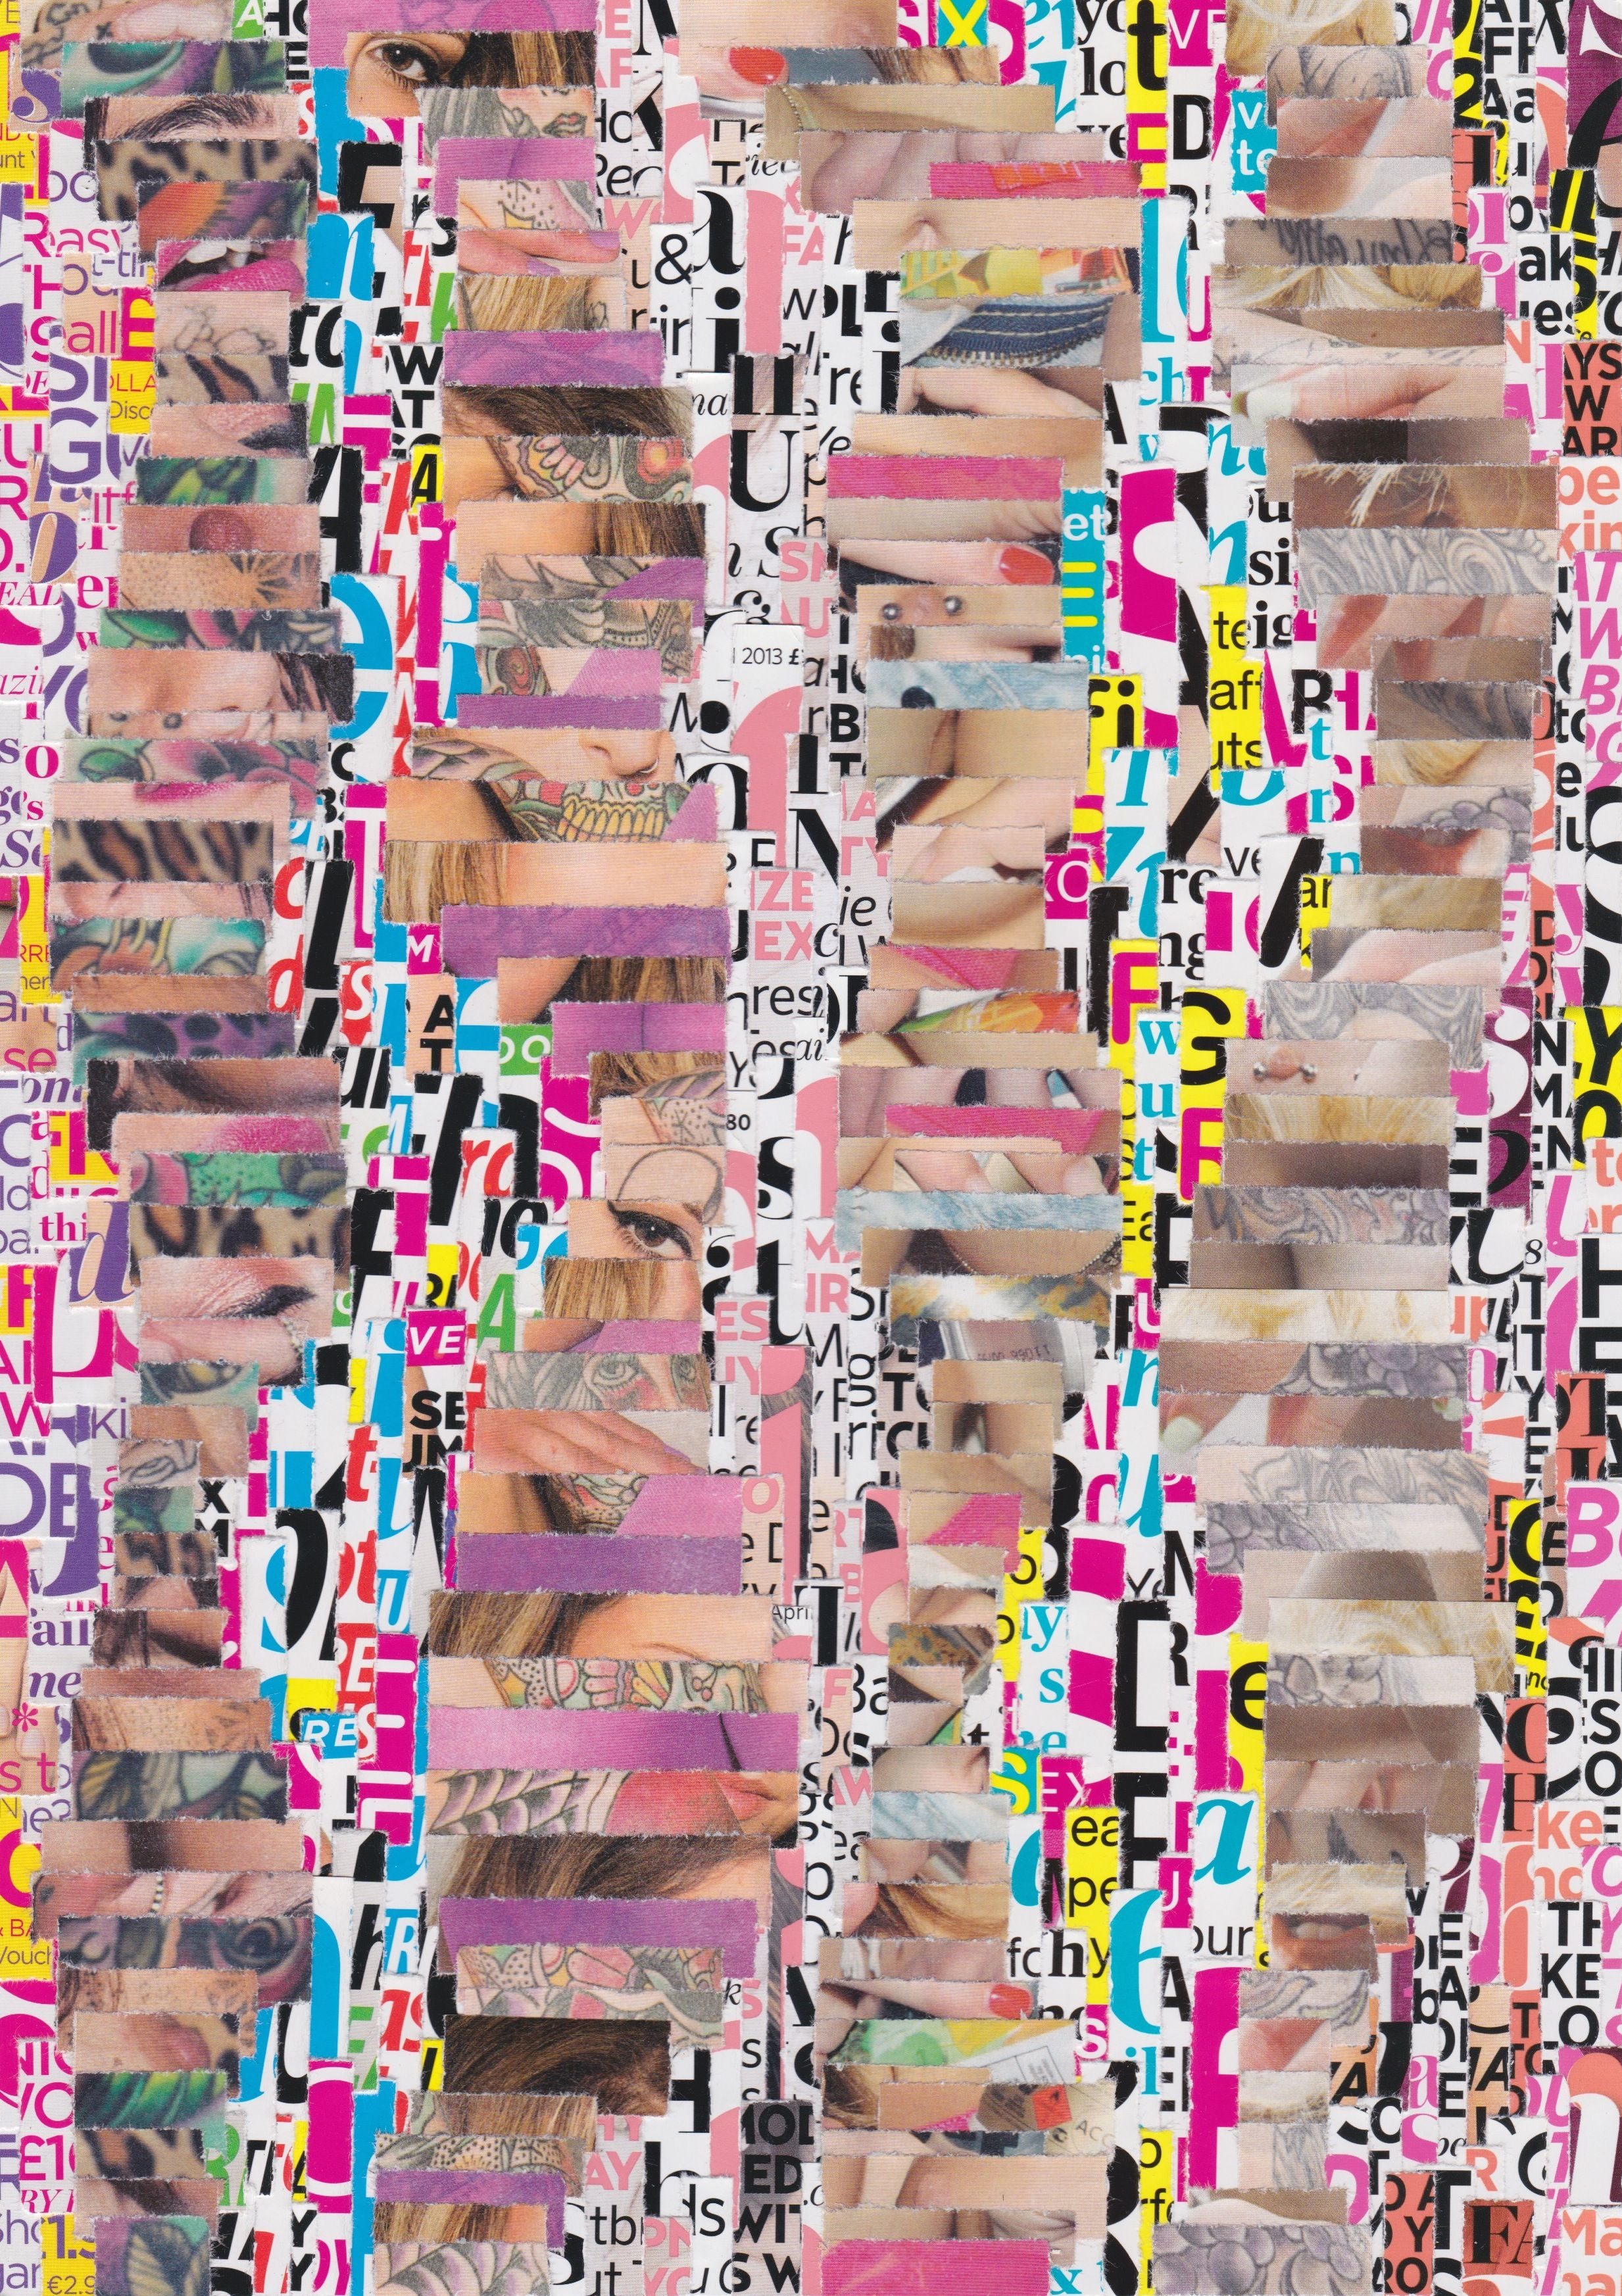 Carnival Mirror (1) A4 - Paper on Paper Completed March 24th 2014